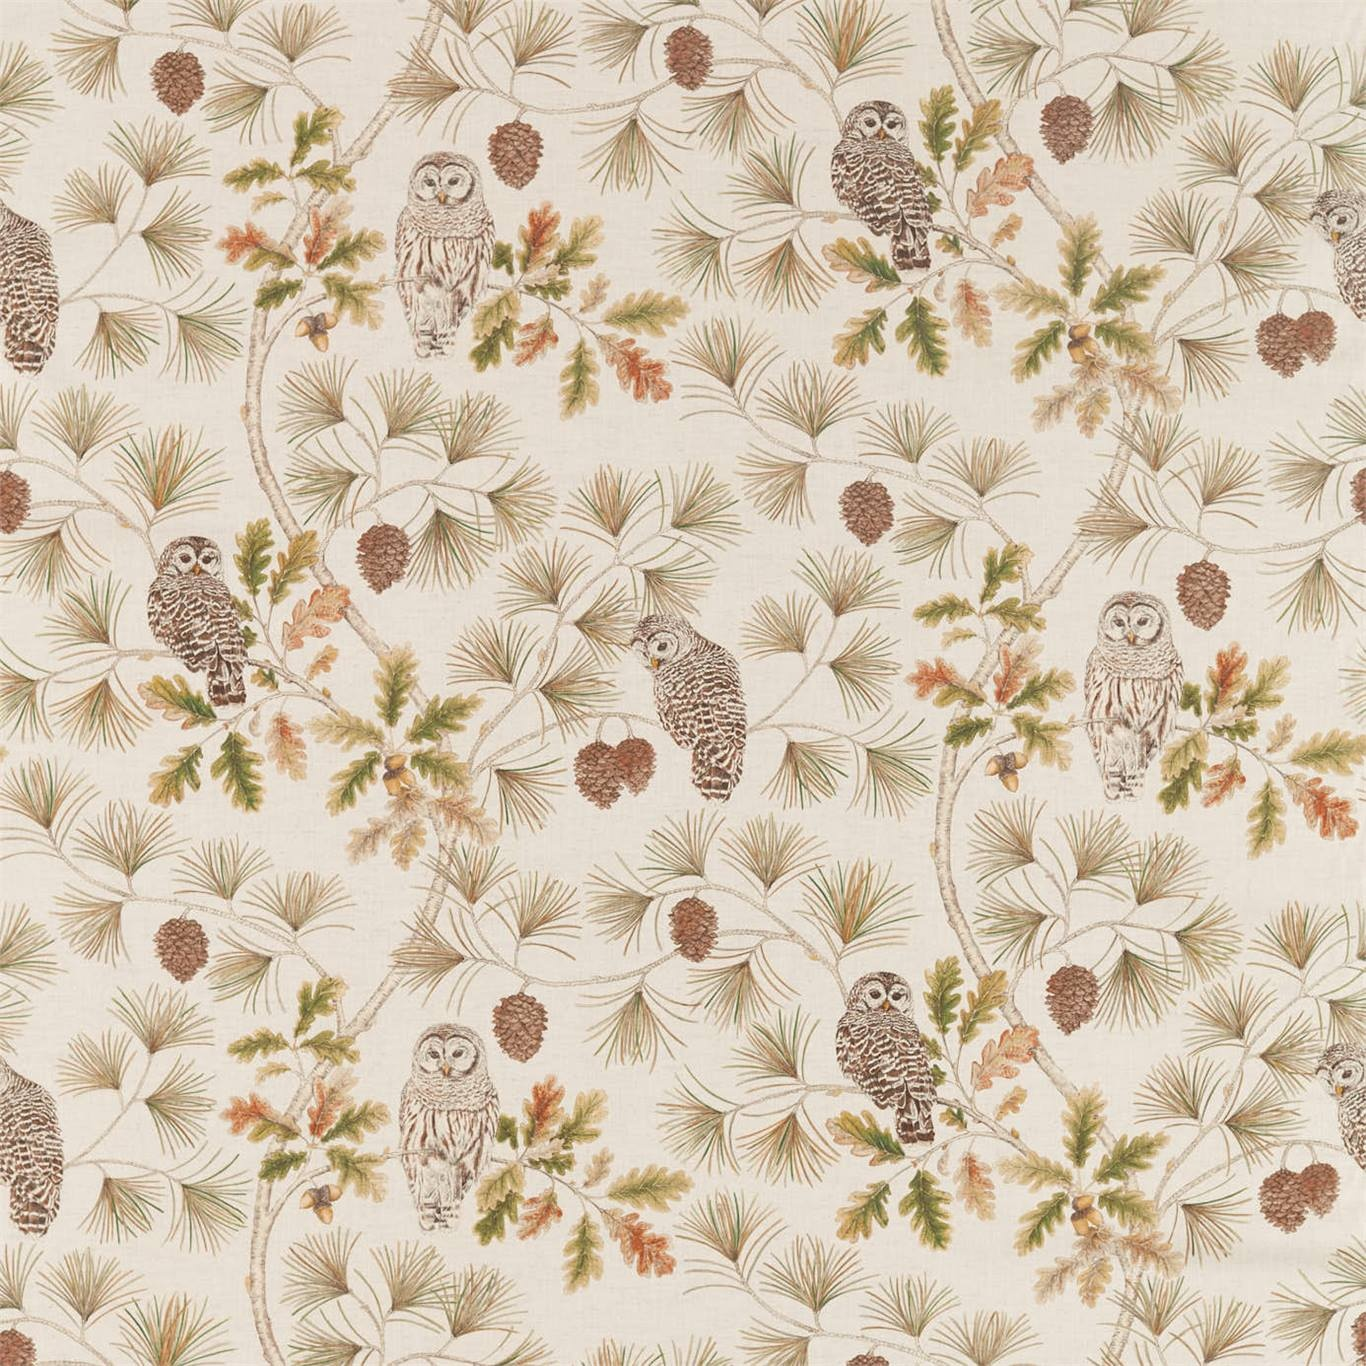 Image of Sanderson Owlswick Briarwood Curtain Fabric 226525